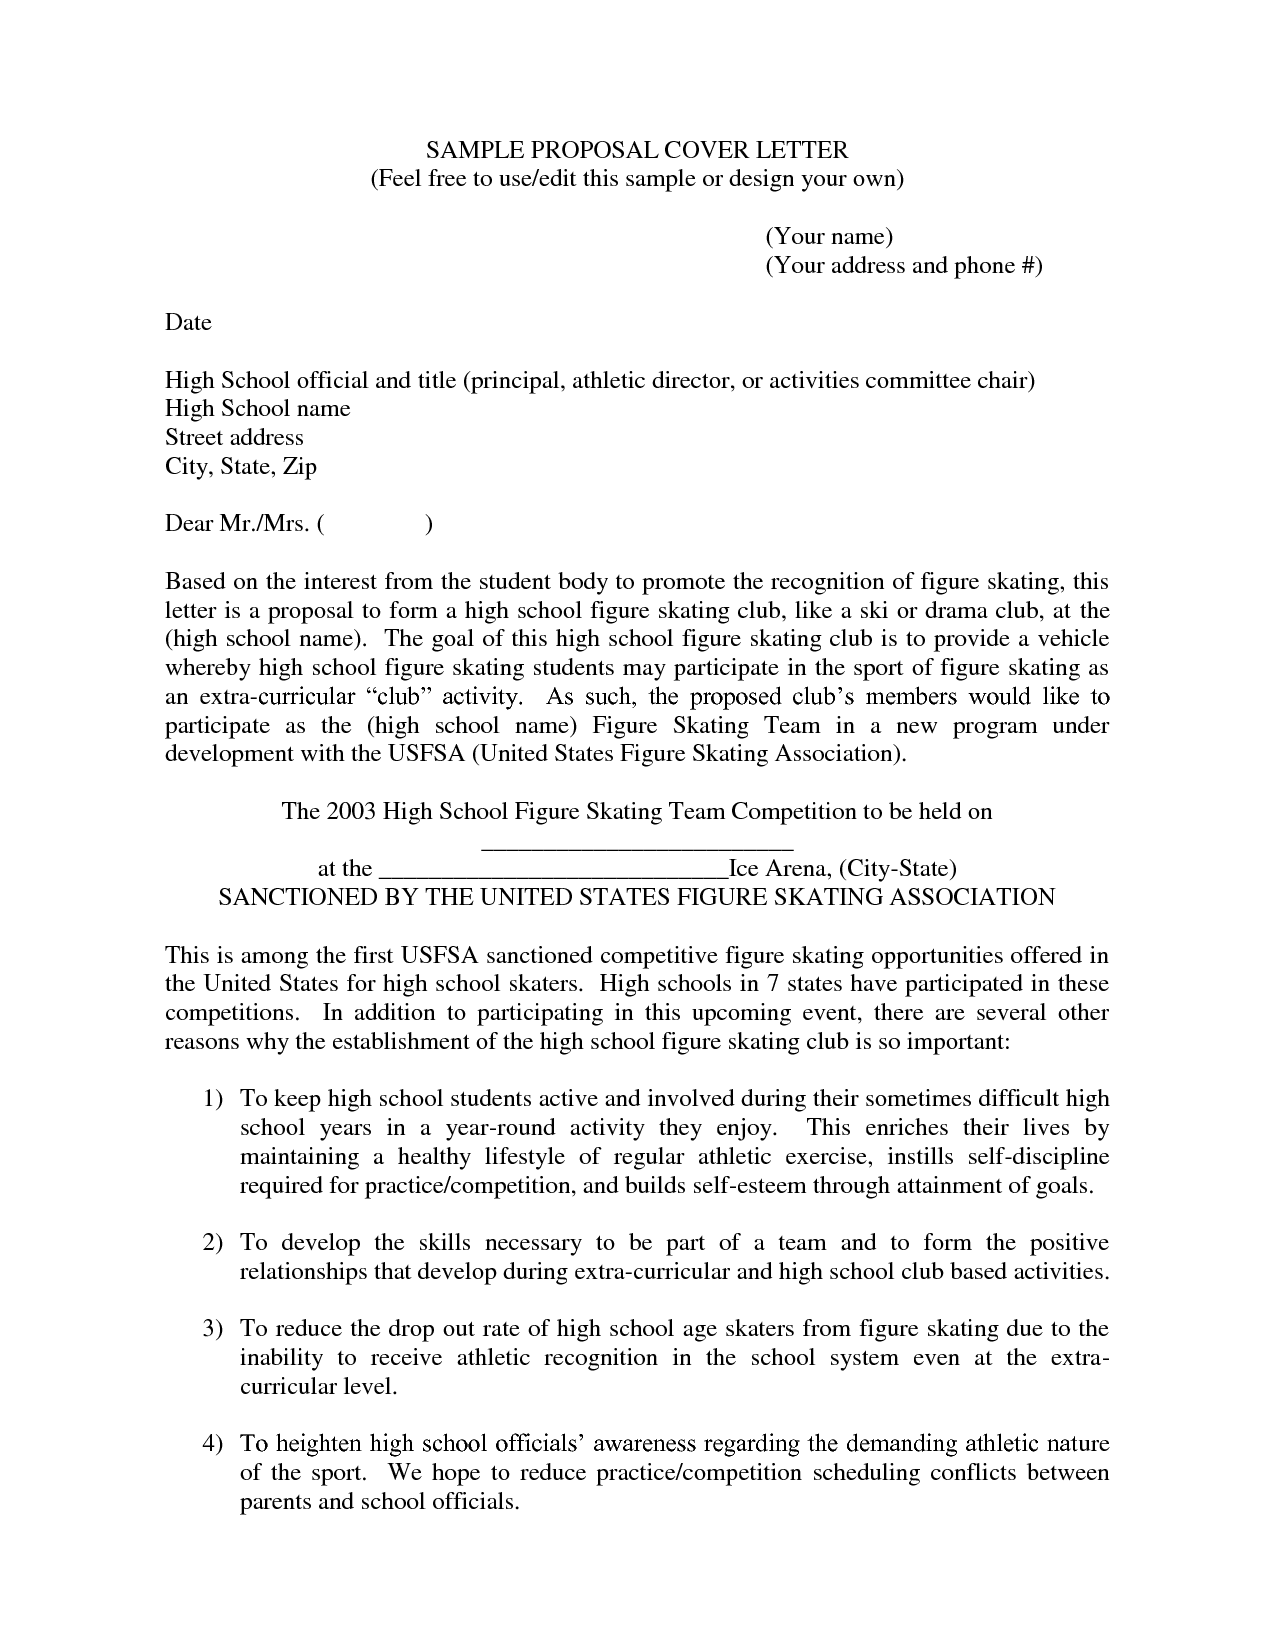 Free proposal letter template seasonal chef cover sample business free proposal letter template seasonal chef cover sample business report trading for submission letterhtml madrichimfo Gallery